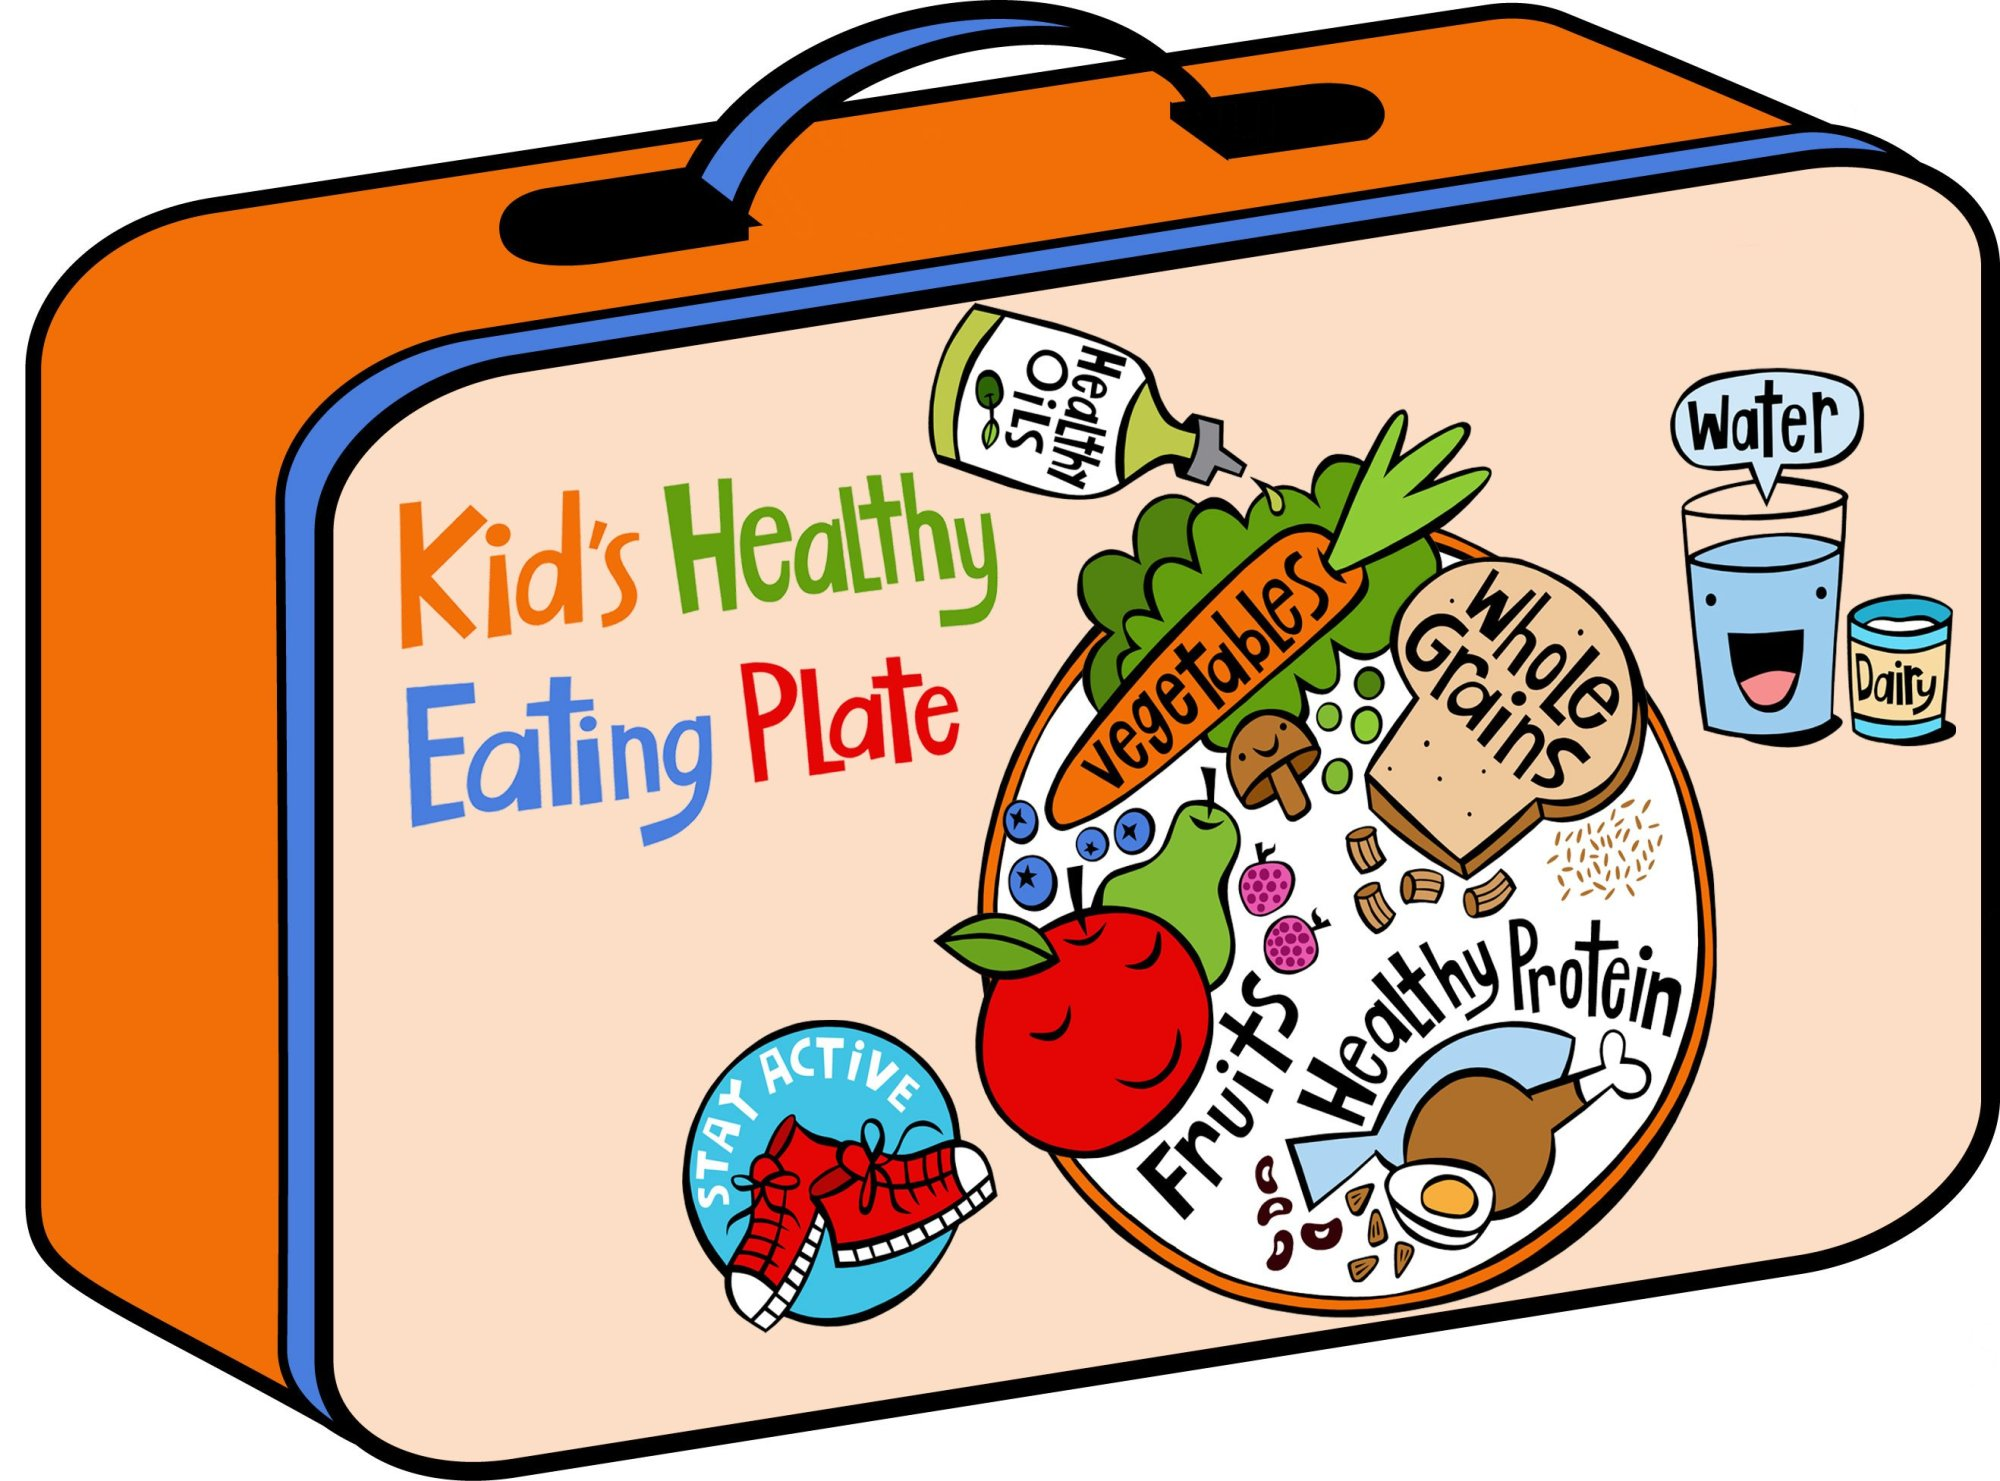 hight resolution of Kid's Healthy Eating Plate   The Nutrition Source   Harvard T.H. Chan  School of Public Health